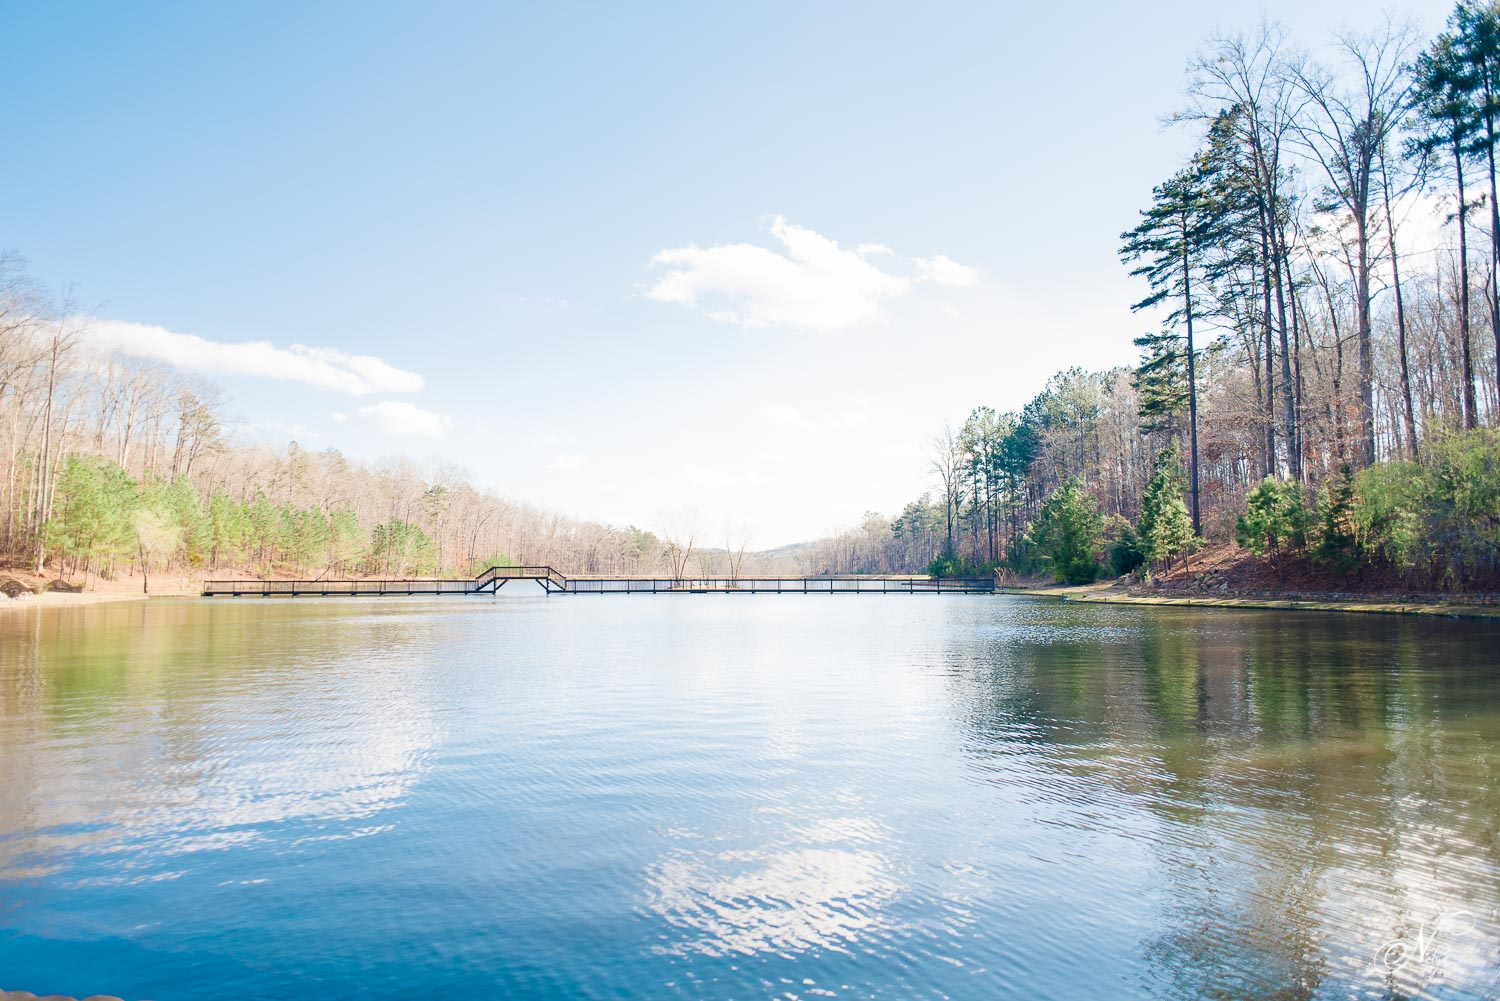 Lake view at Indigo Falls in Dallas Georgia in March